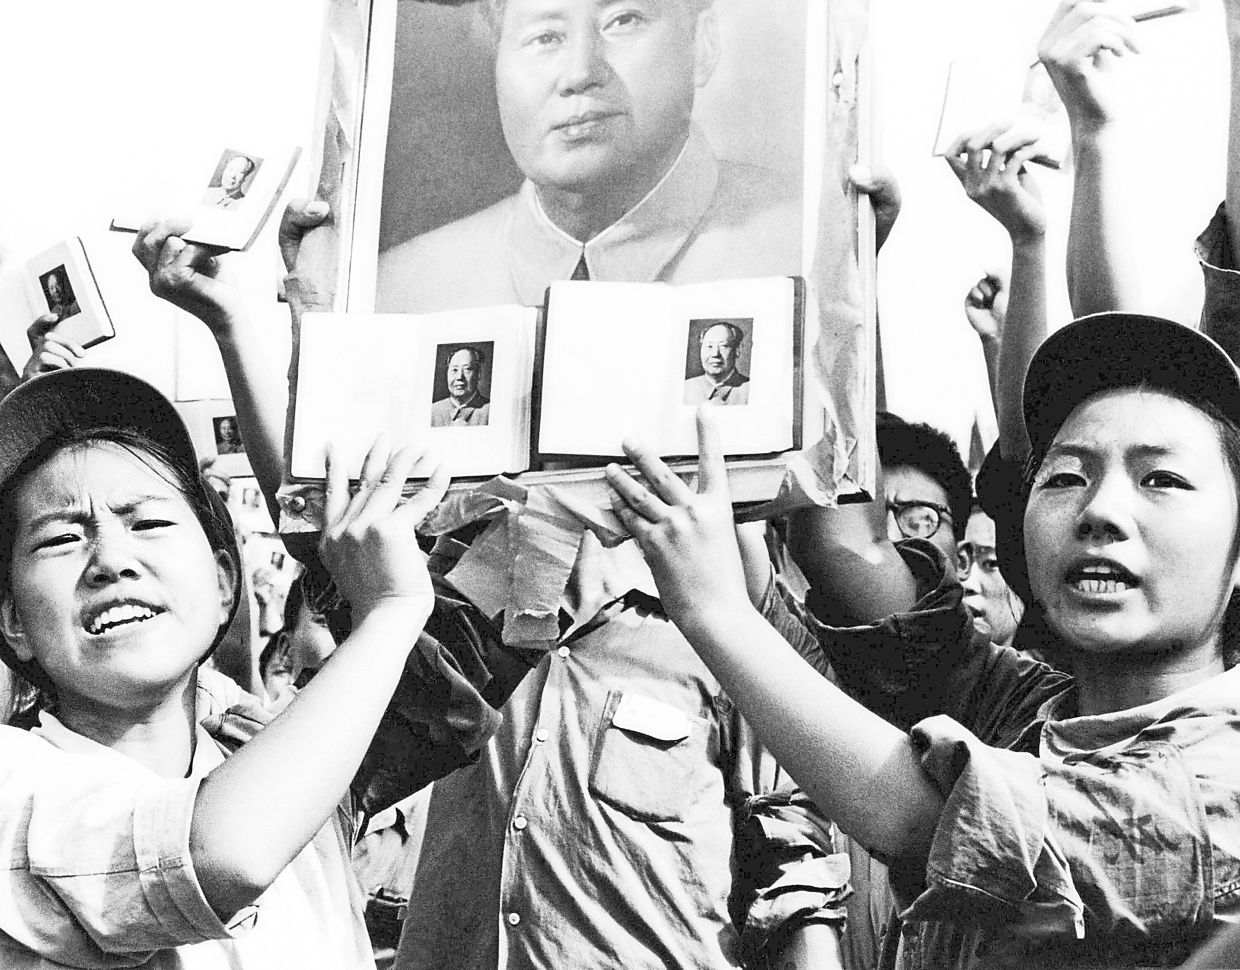 Today's Gen Z in China are harking back to the feelings a much older generation had for Mao. In this 1966 file photo, portraits of the Great Leader and books are being held up at a public rally in Beijing. — AP